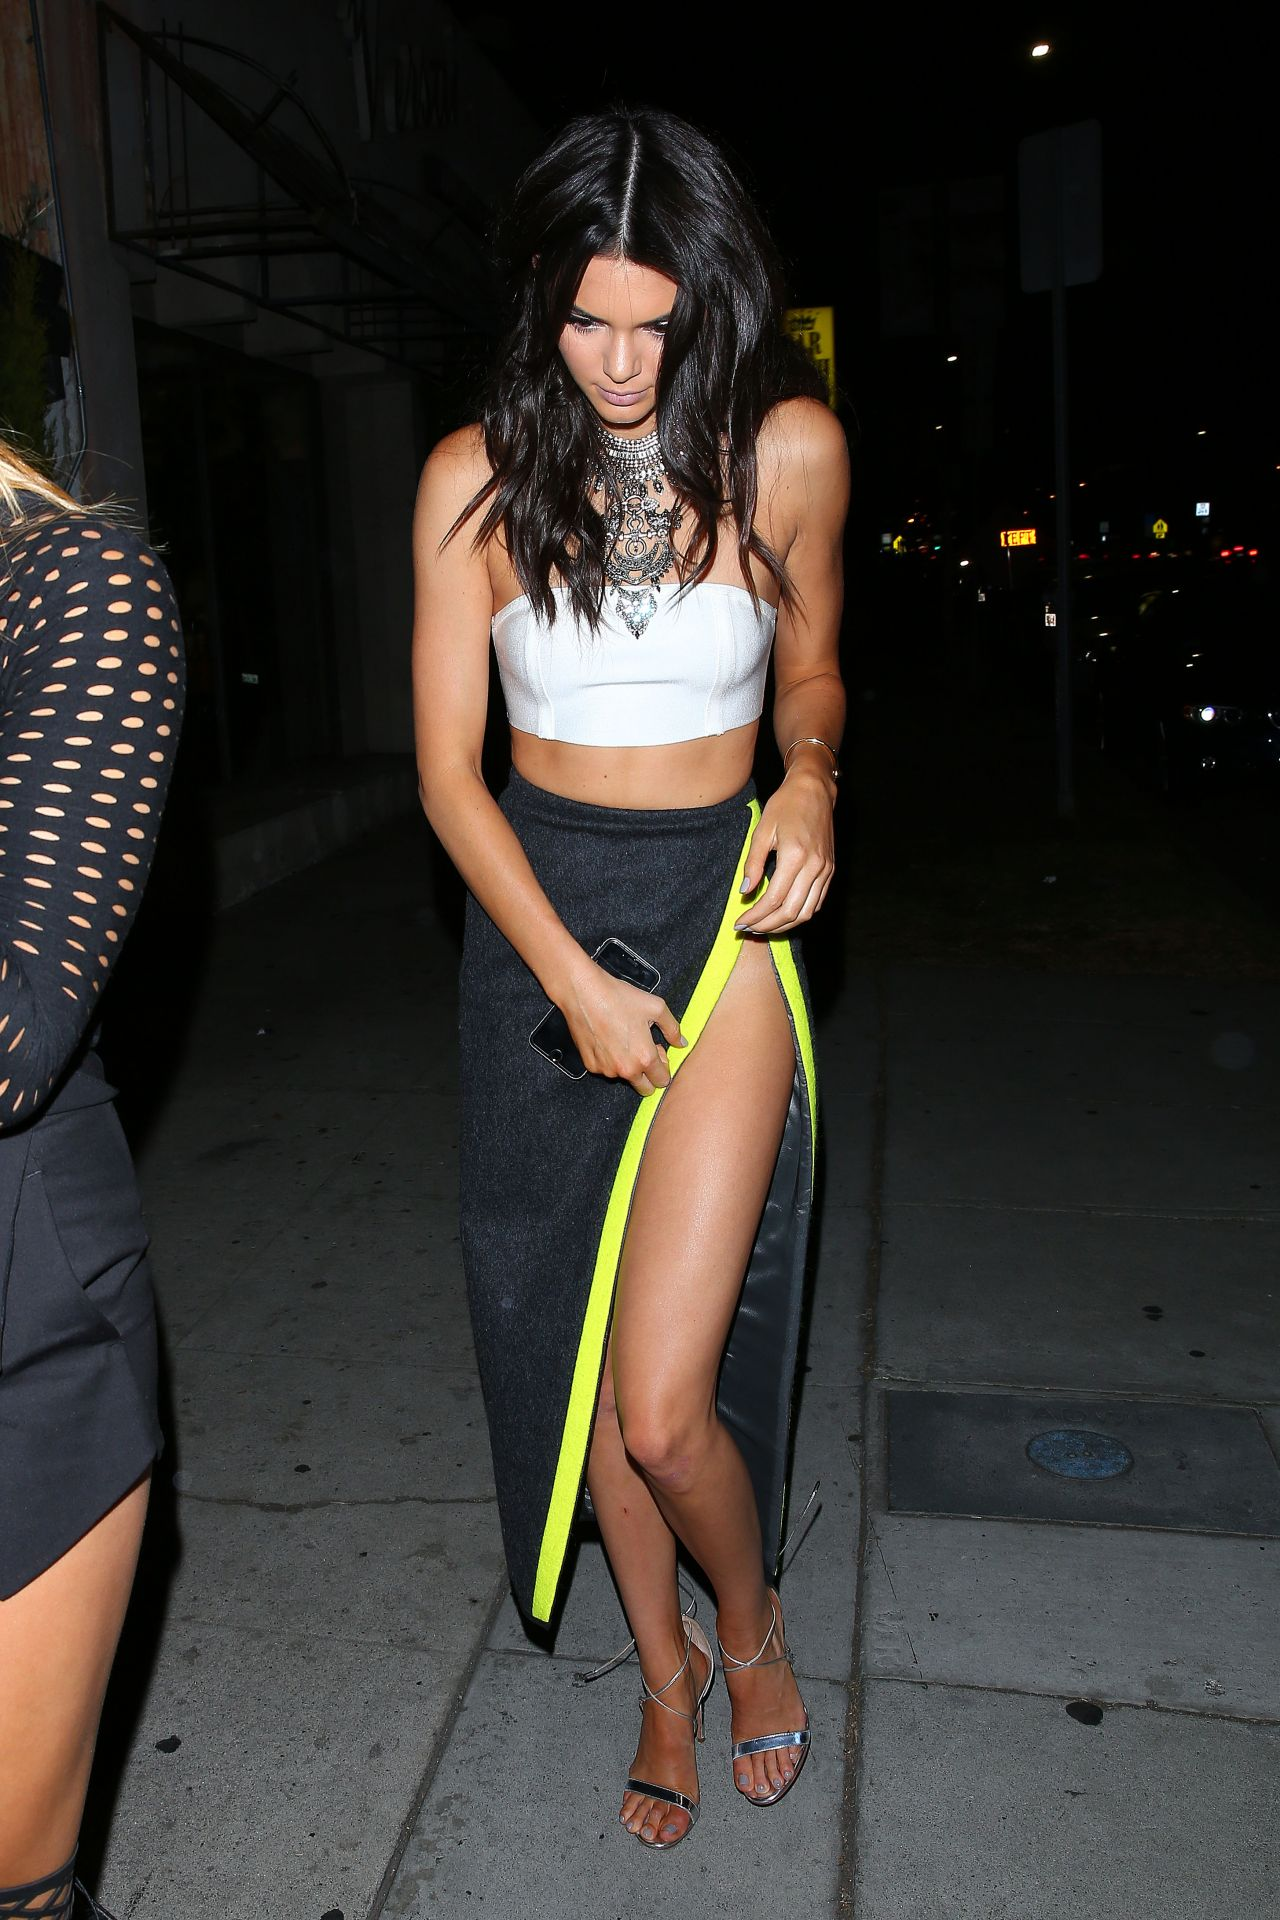 kendall-jenner-hailey-baldwin-arriving-at-the-nice-guy-in-hollywood-august-2015_4